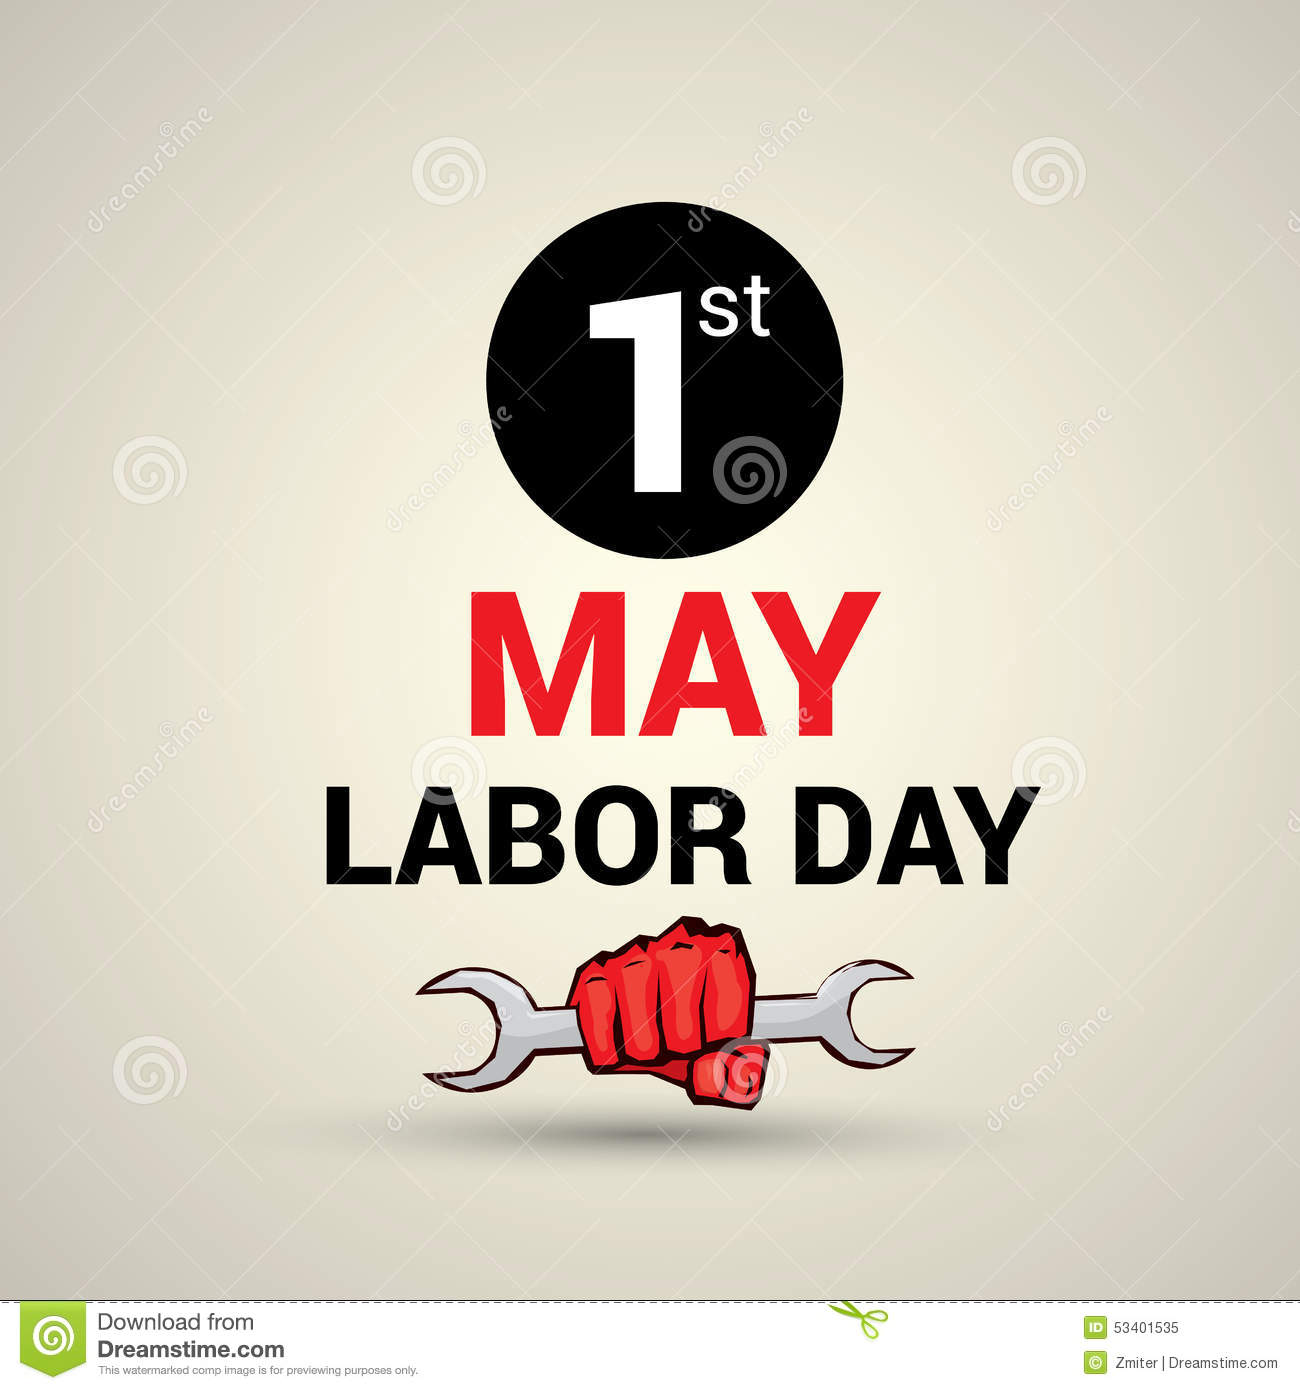 Poster design with text 1st may labor day stock image image of poster design with text 1st may labor day kristyandbryce Image collections